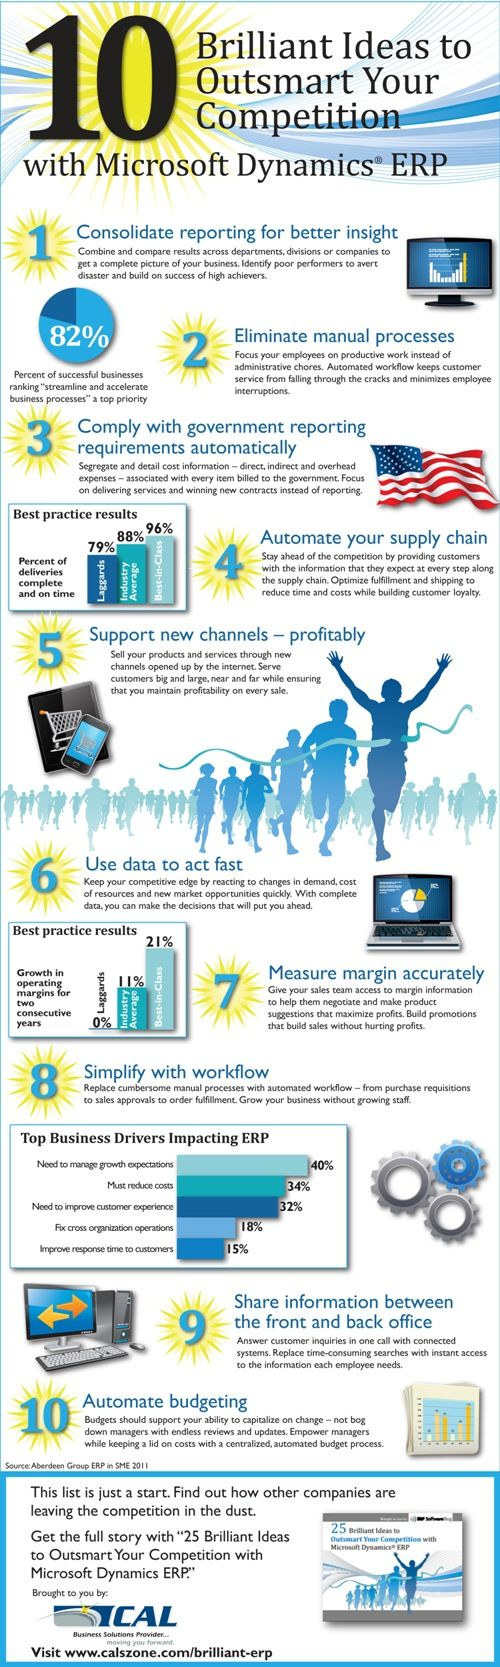 10 Brilliant Ideas to Outsmart Your Competition with Microsoft Dynamics ERP - More info at: http://www.calszone.com/free-resources-microsoft-dynamics-gp/infographics/10-brilliant-ideas/